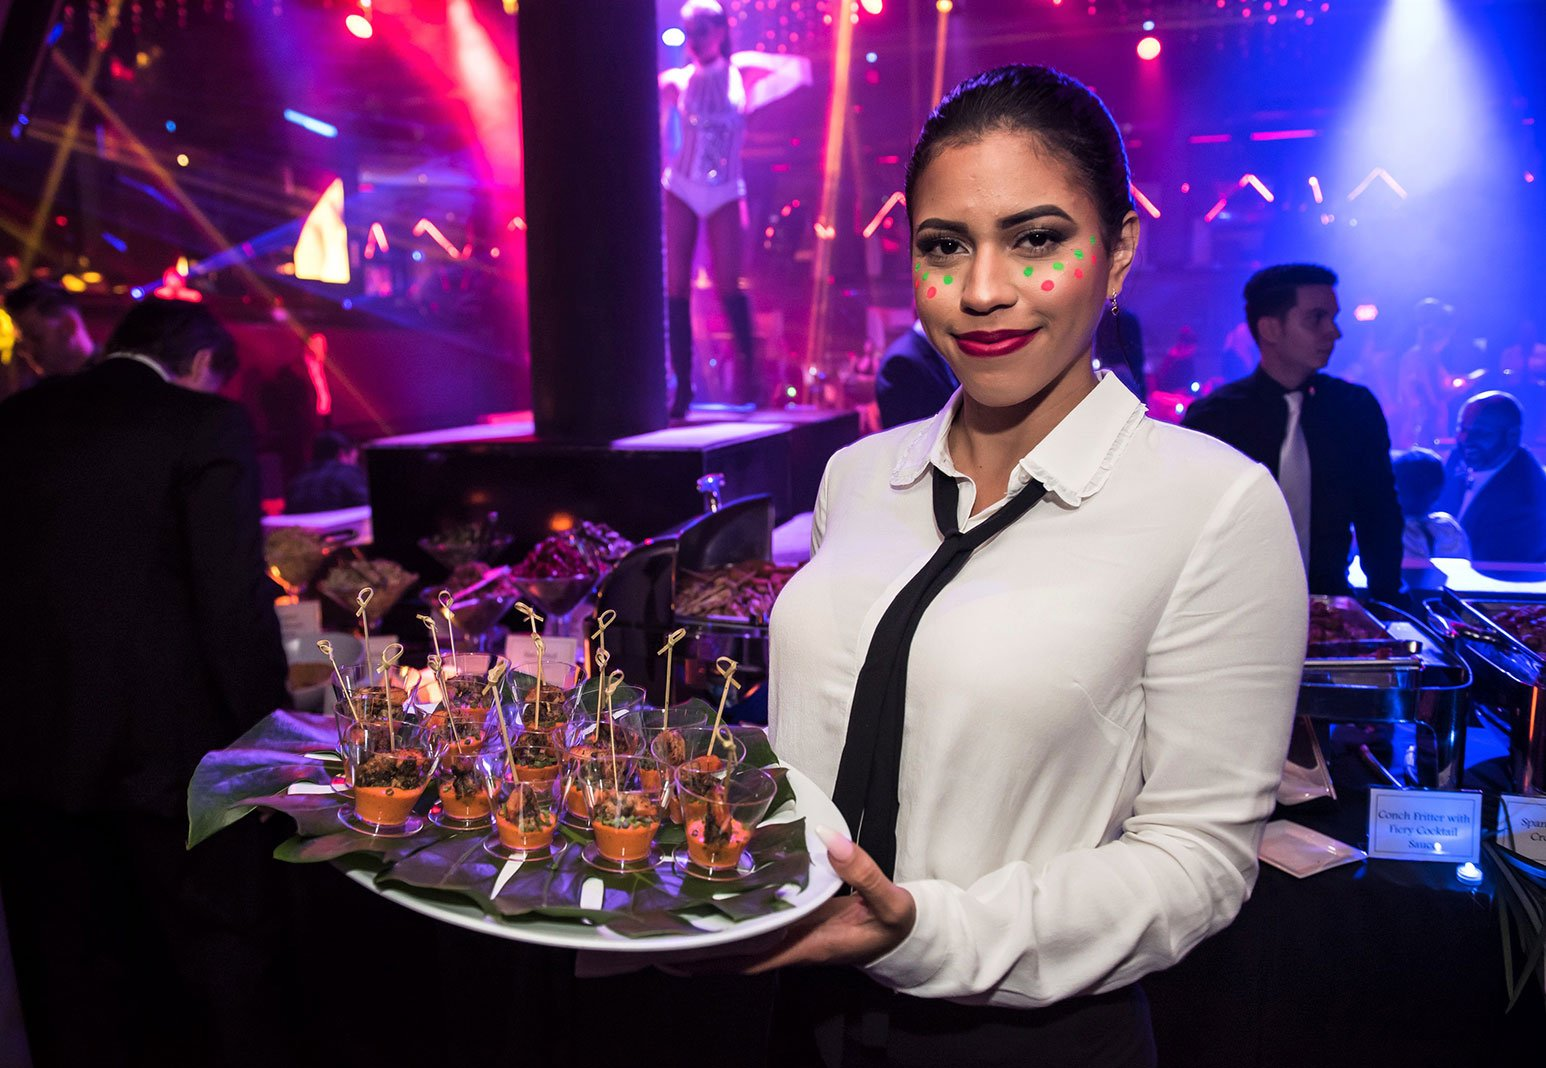 Eggwhites Special Event Catering at 2017 Billboard Latin Music Awards VIP After-Party at STORY Nightclub